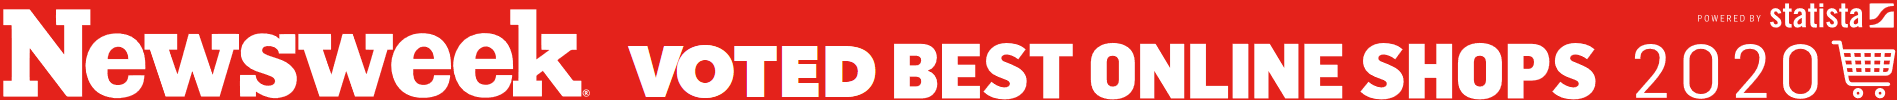 Newsweek Voted Best Online Shops 2020